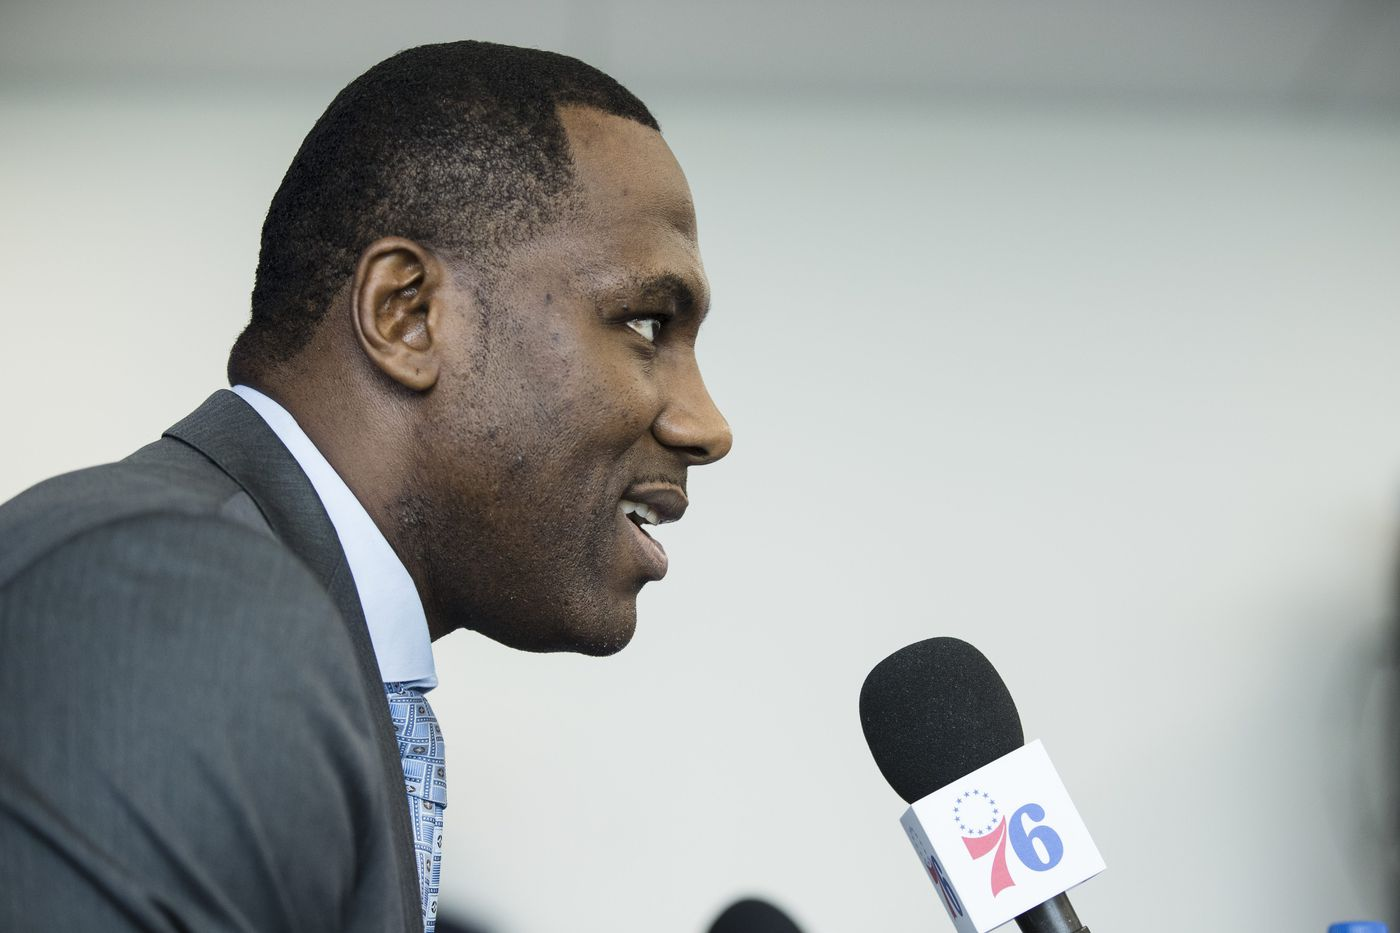 Will Sixers' GM Elton Brand get leeway from ownership to be a leader?